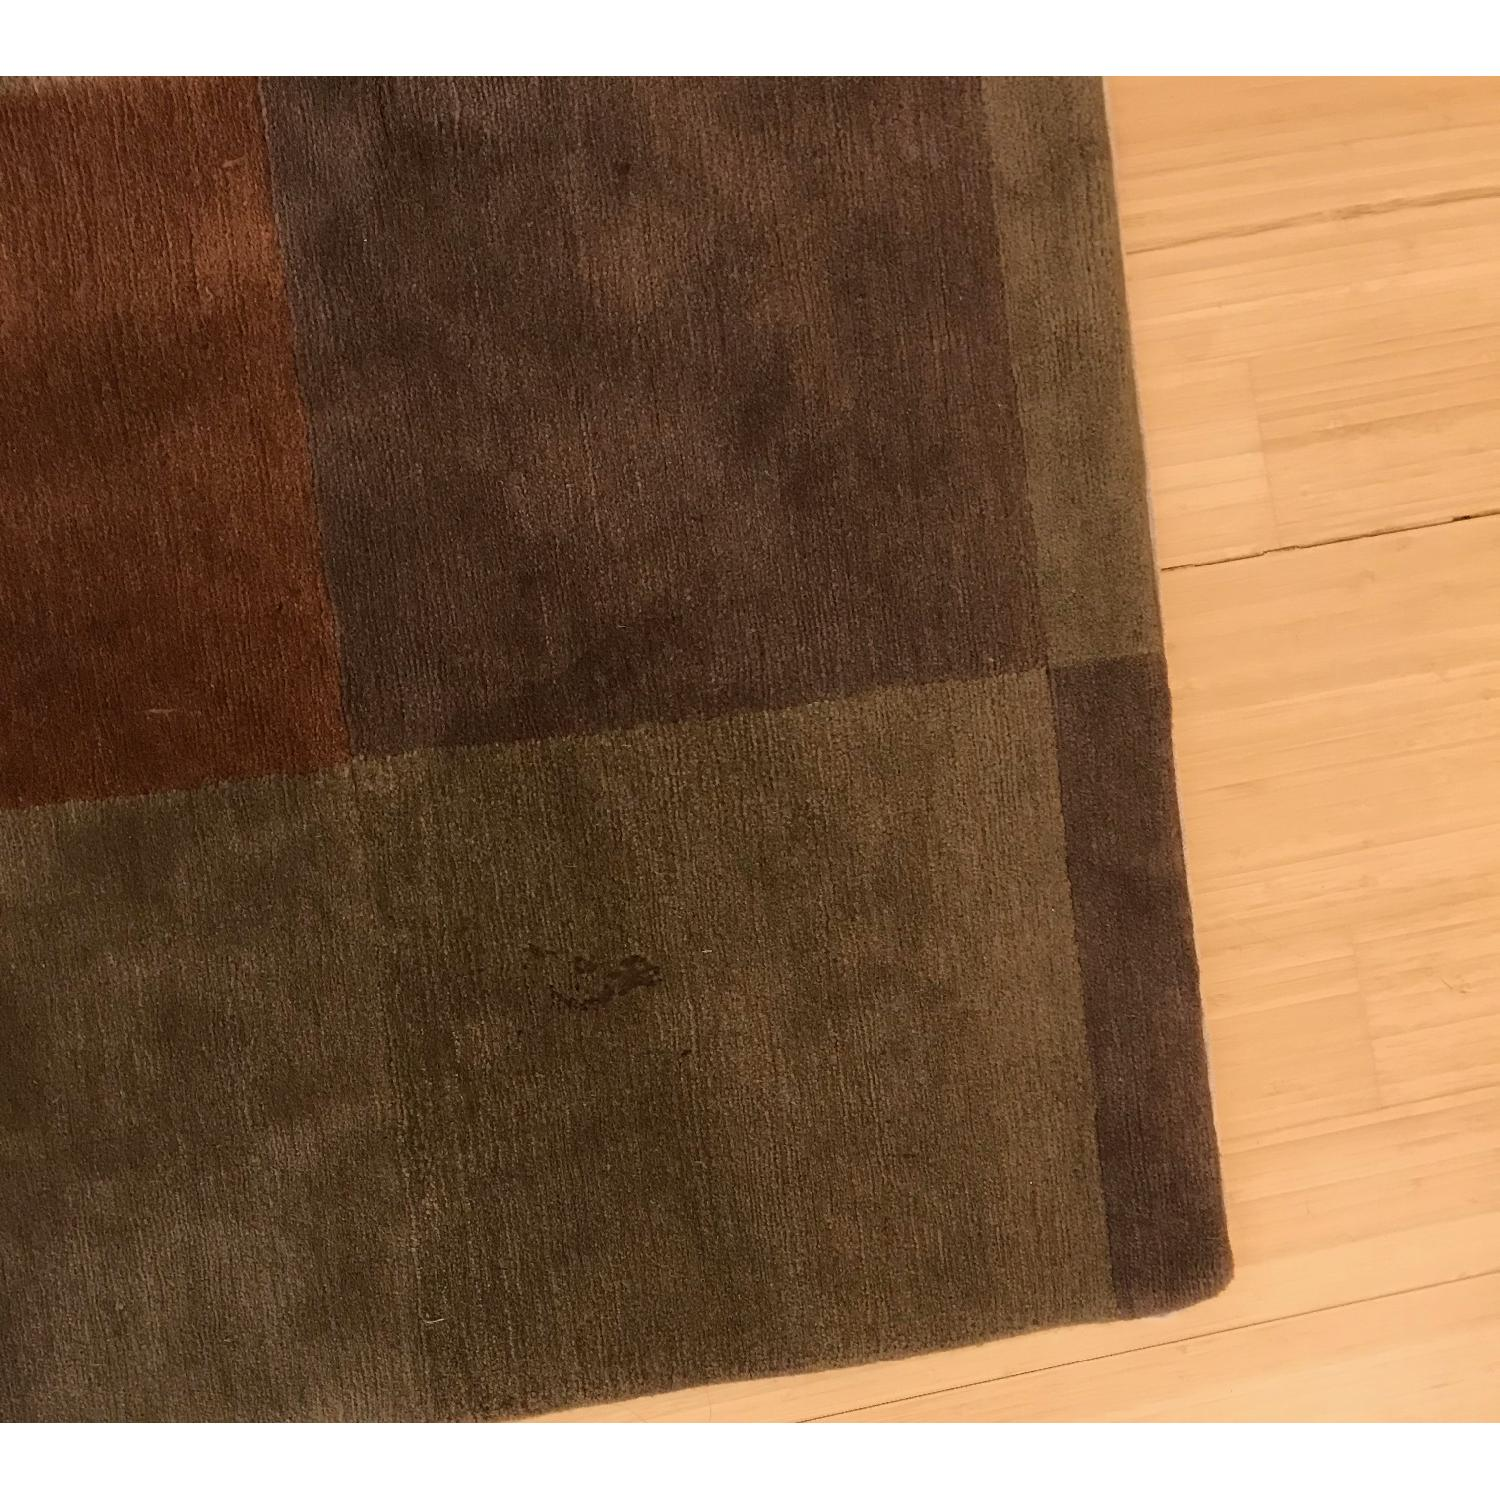 Hand Knotted Tibetan Wool Rug in Neutral Colors - image-3